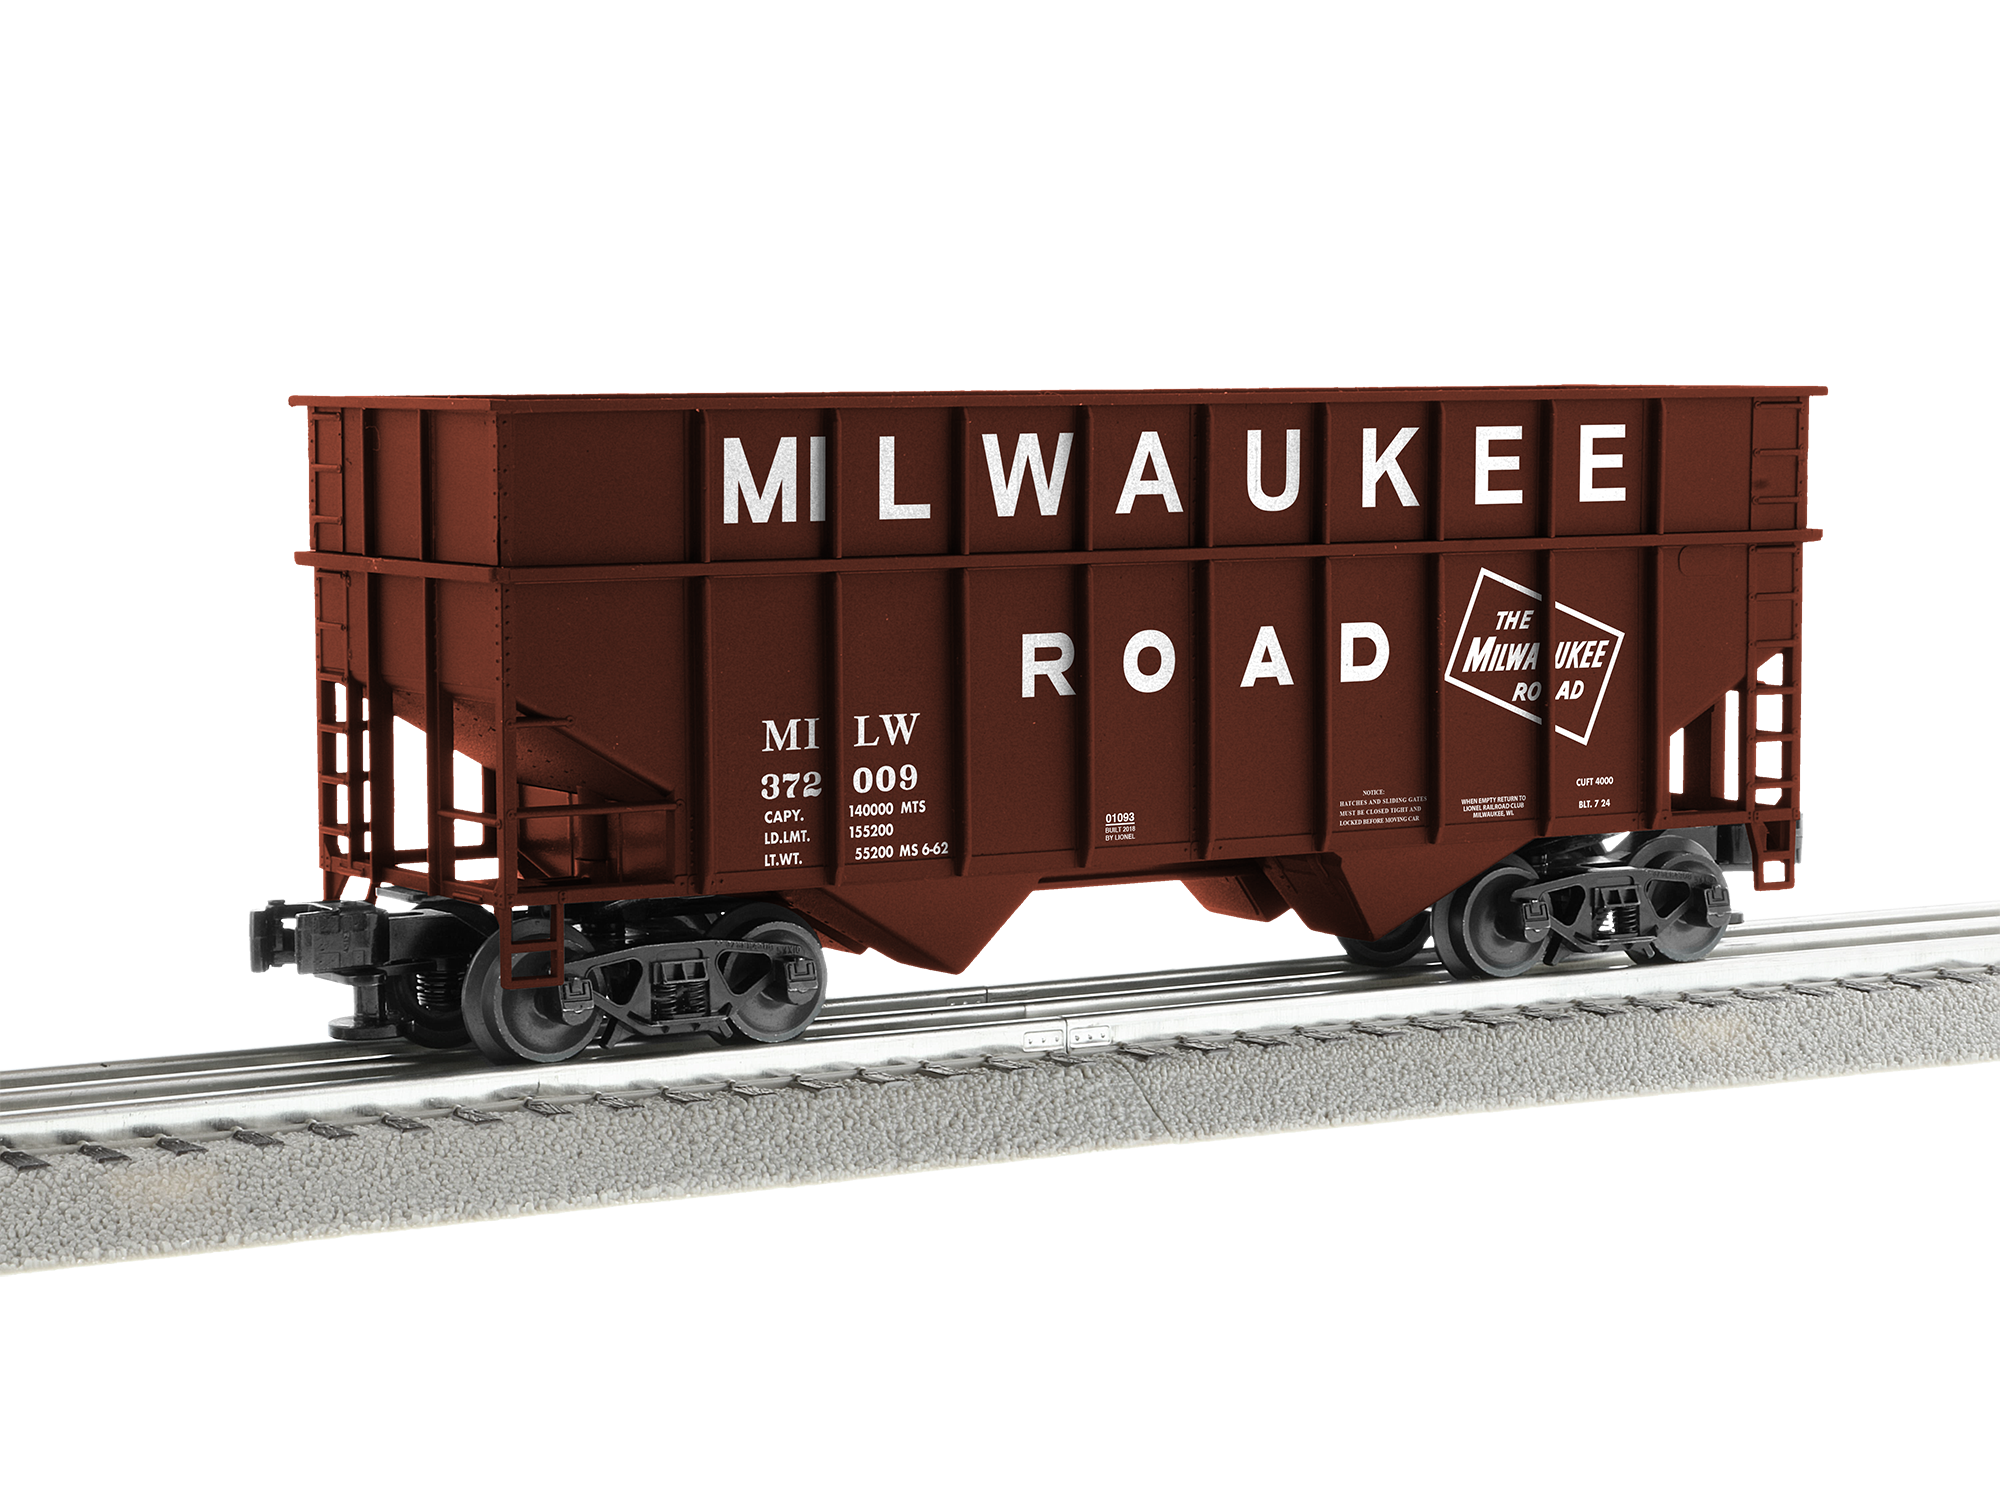 1901093 LRRC Milwaukee WdChp Hpr_#372009 (2).png